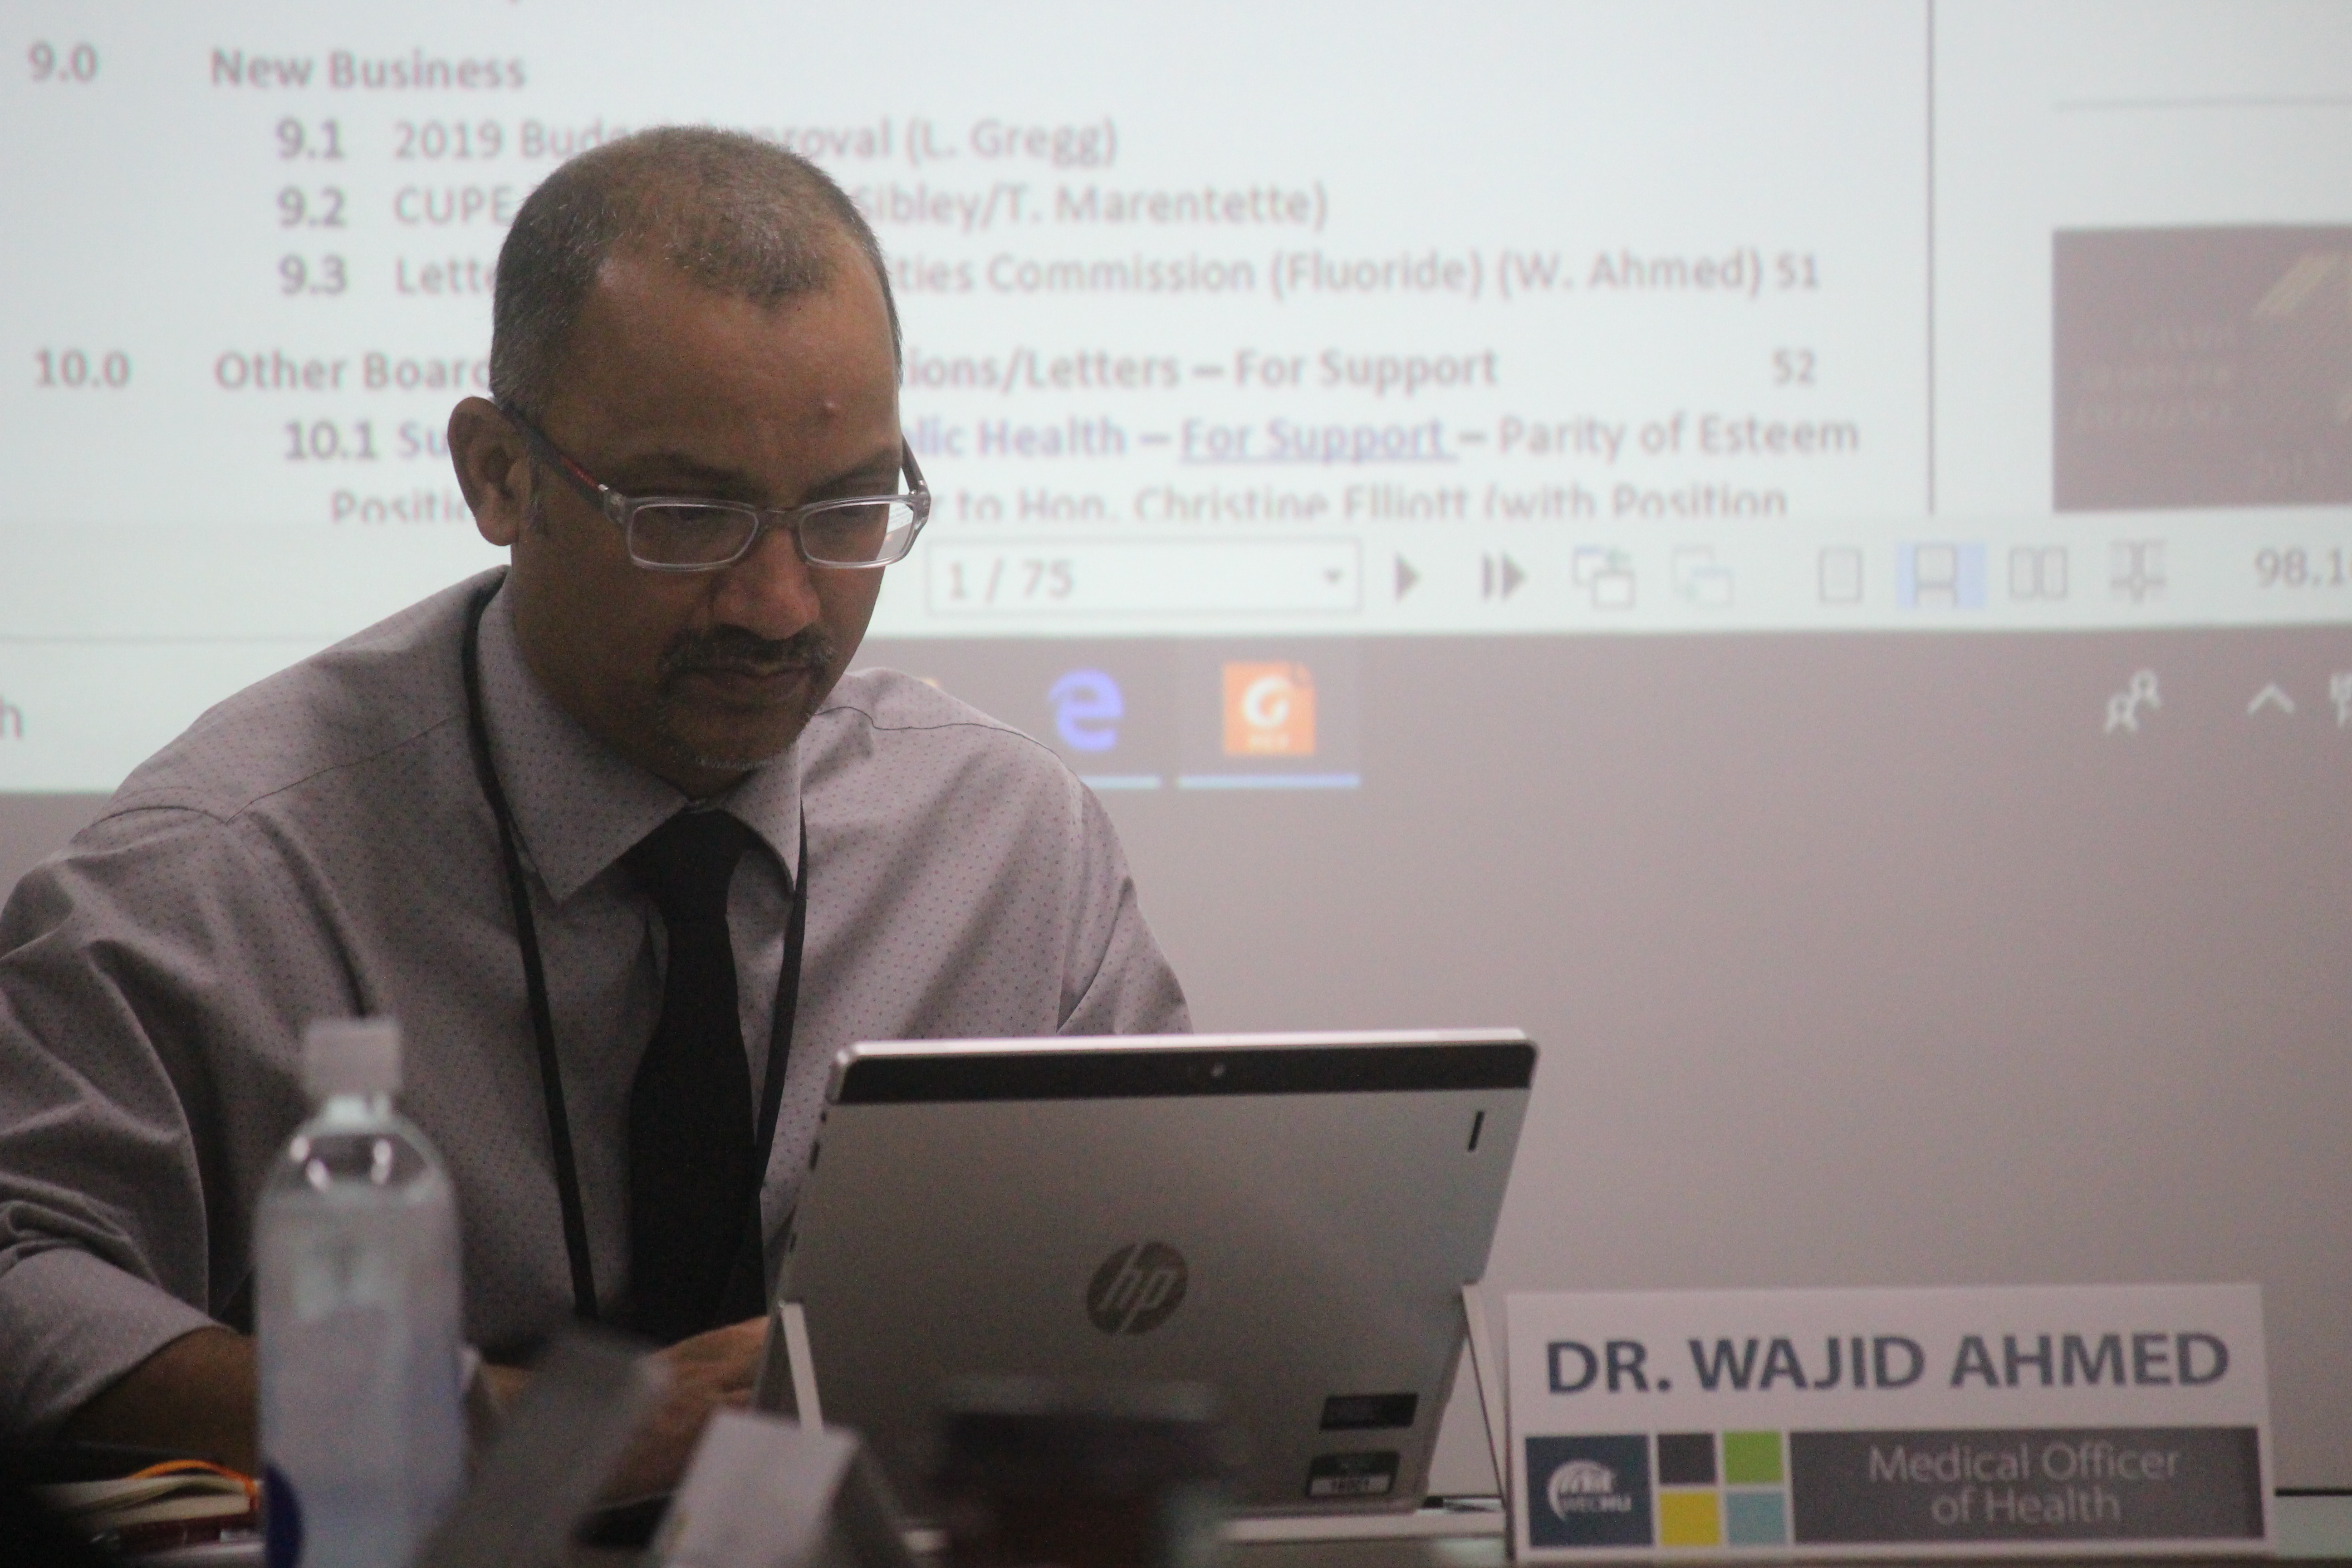 Dr Wajid Ahmed, medical officer of health for the Windsor-Essex County Health Unit, at their board meeting on September 19, 2019. Photo by Mark Brown/Blackburn News.